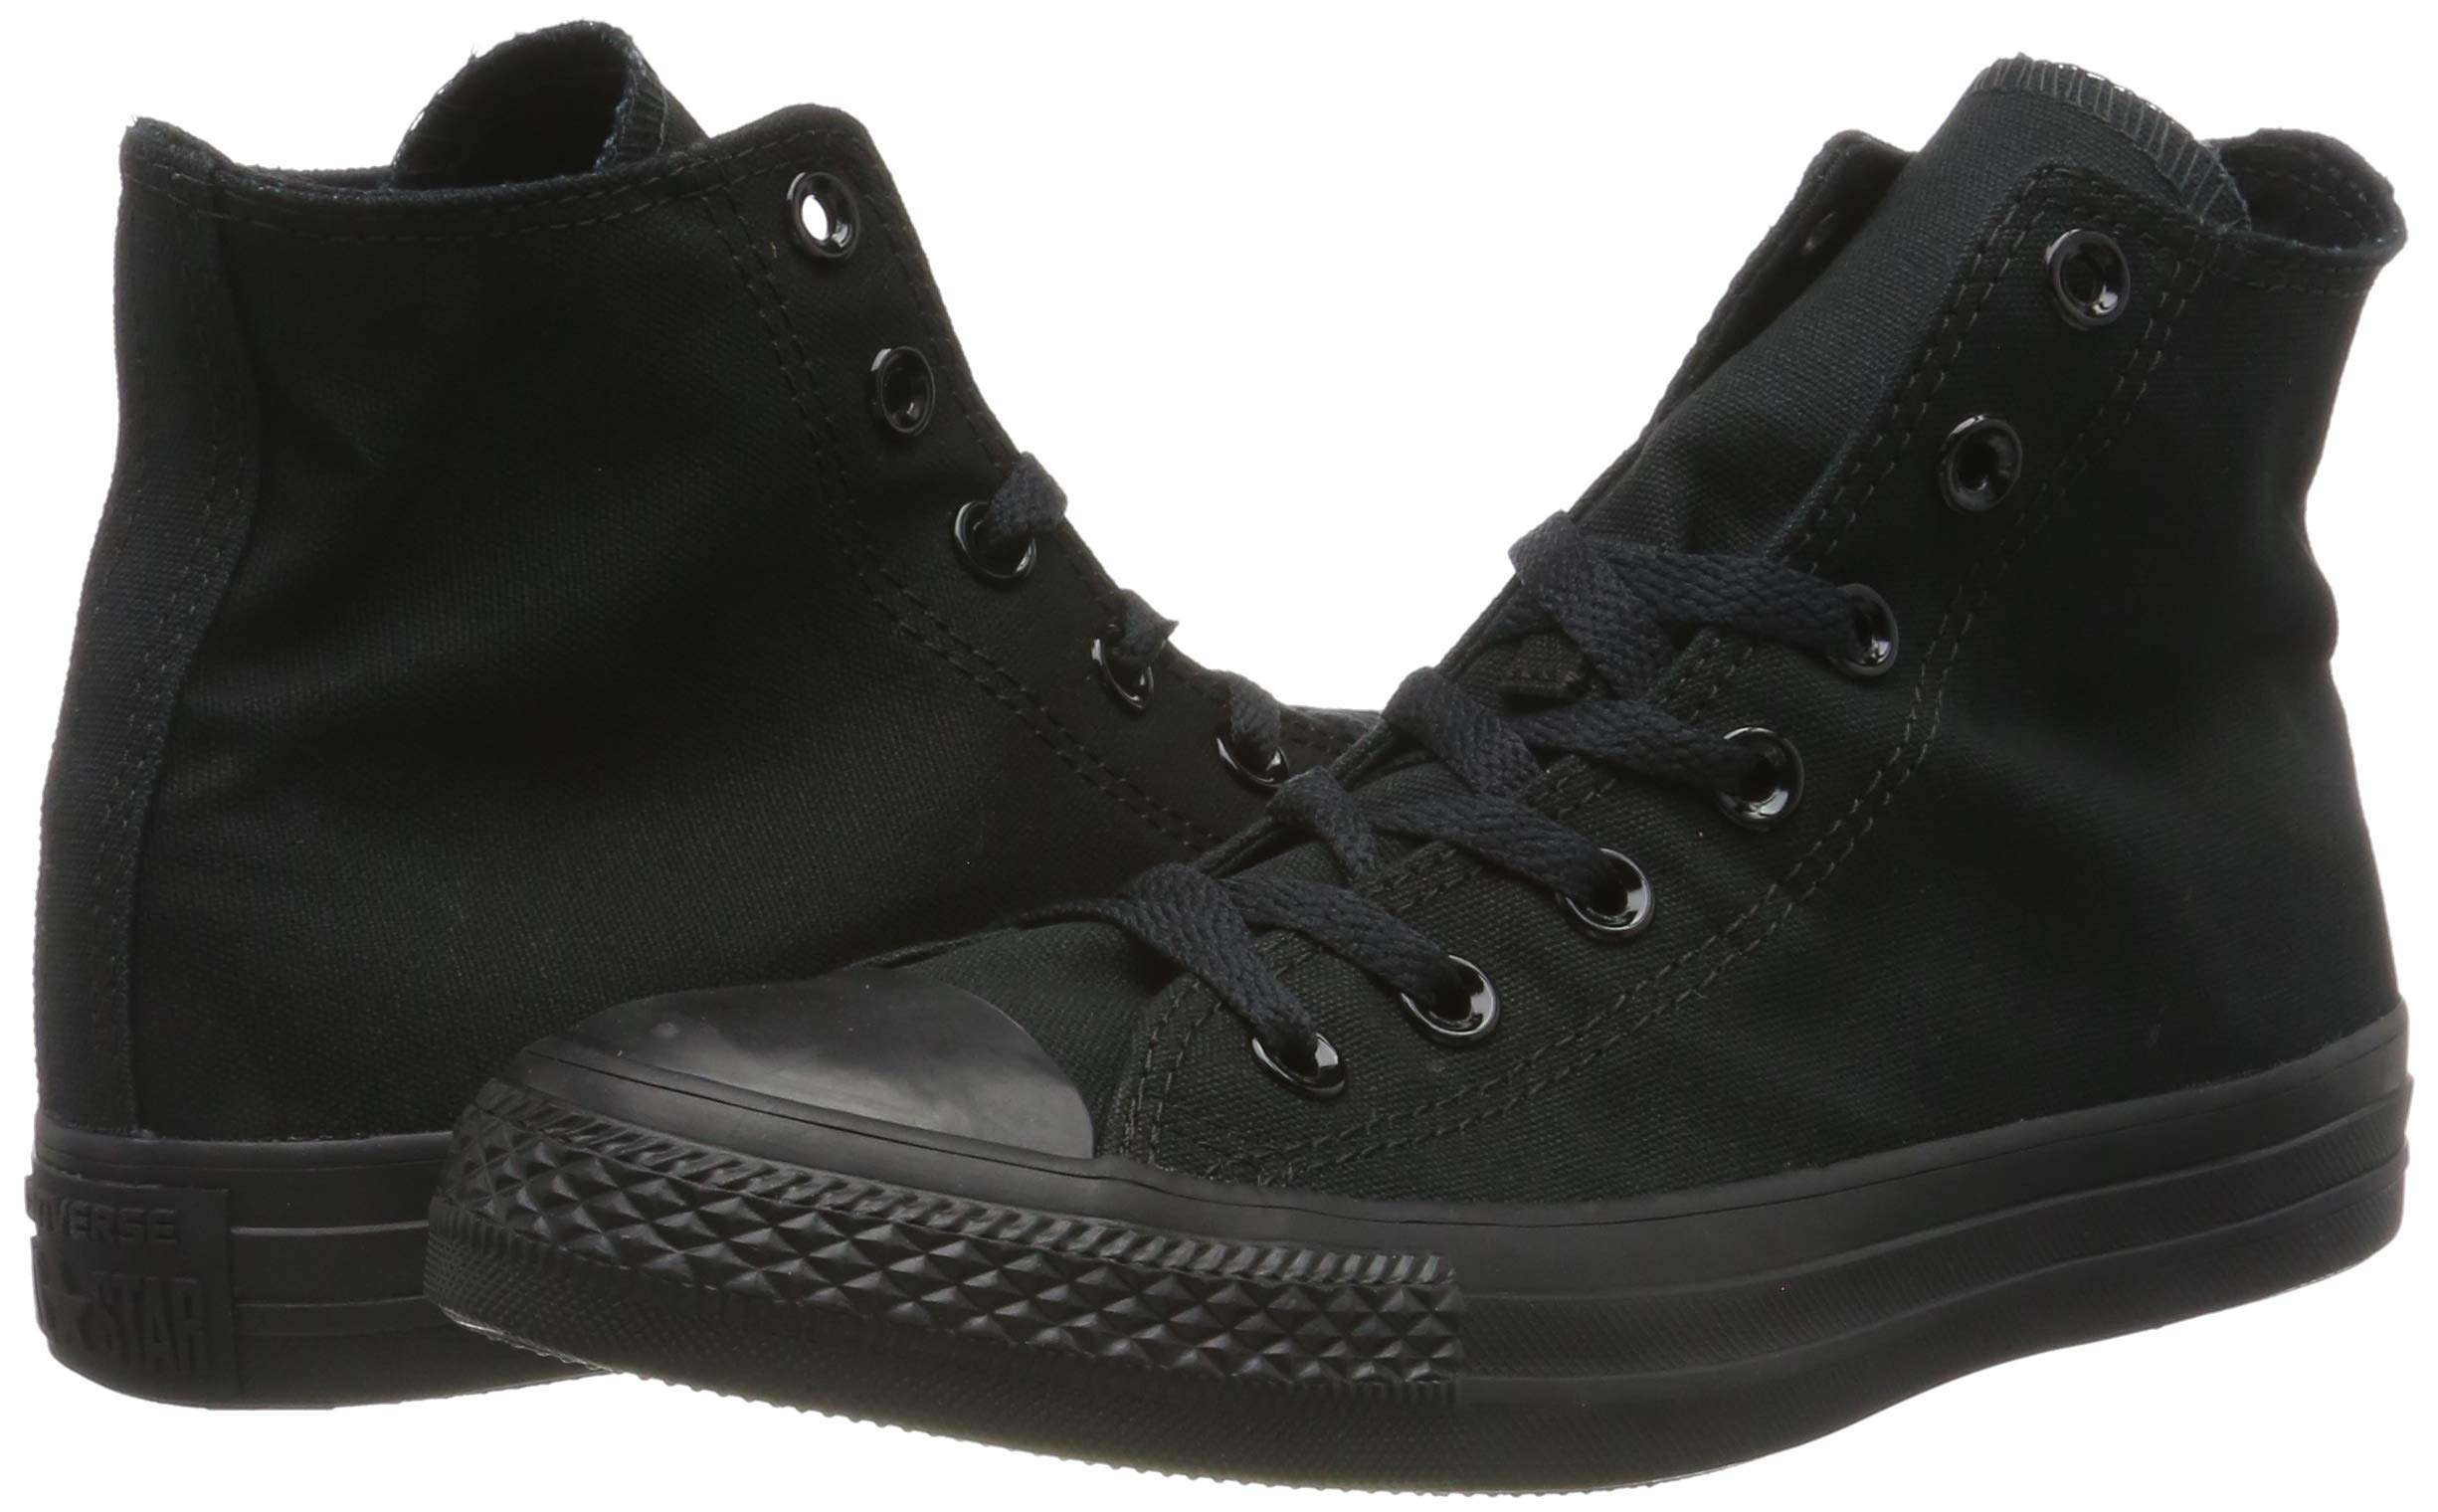 Converse M9160: Chuck Taylor All Star High Top Unisex Black White Sneakers by Converse (Image #6)